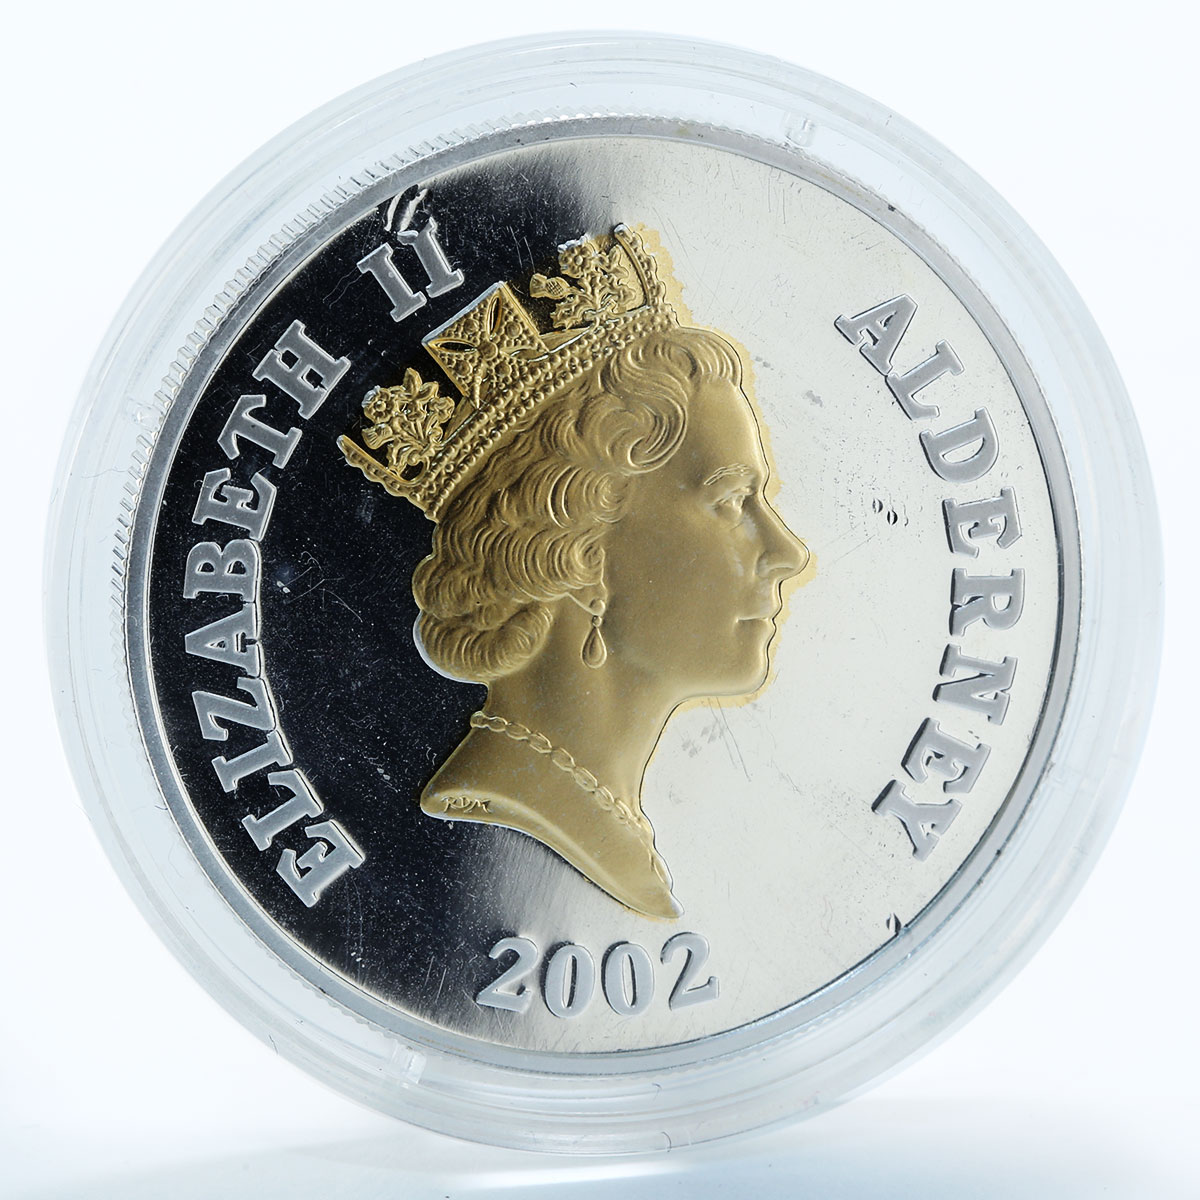 Alderney 5 pounds Golden Jubilee gilded silver proof coin 2002